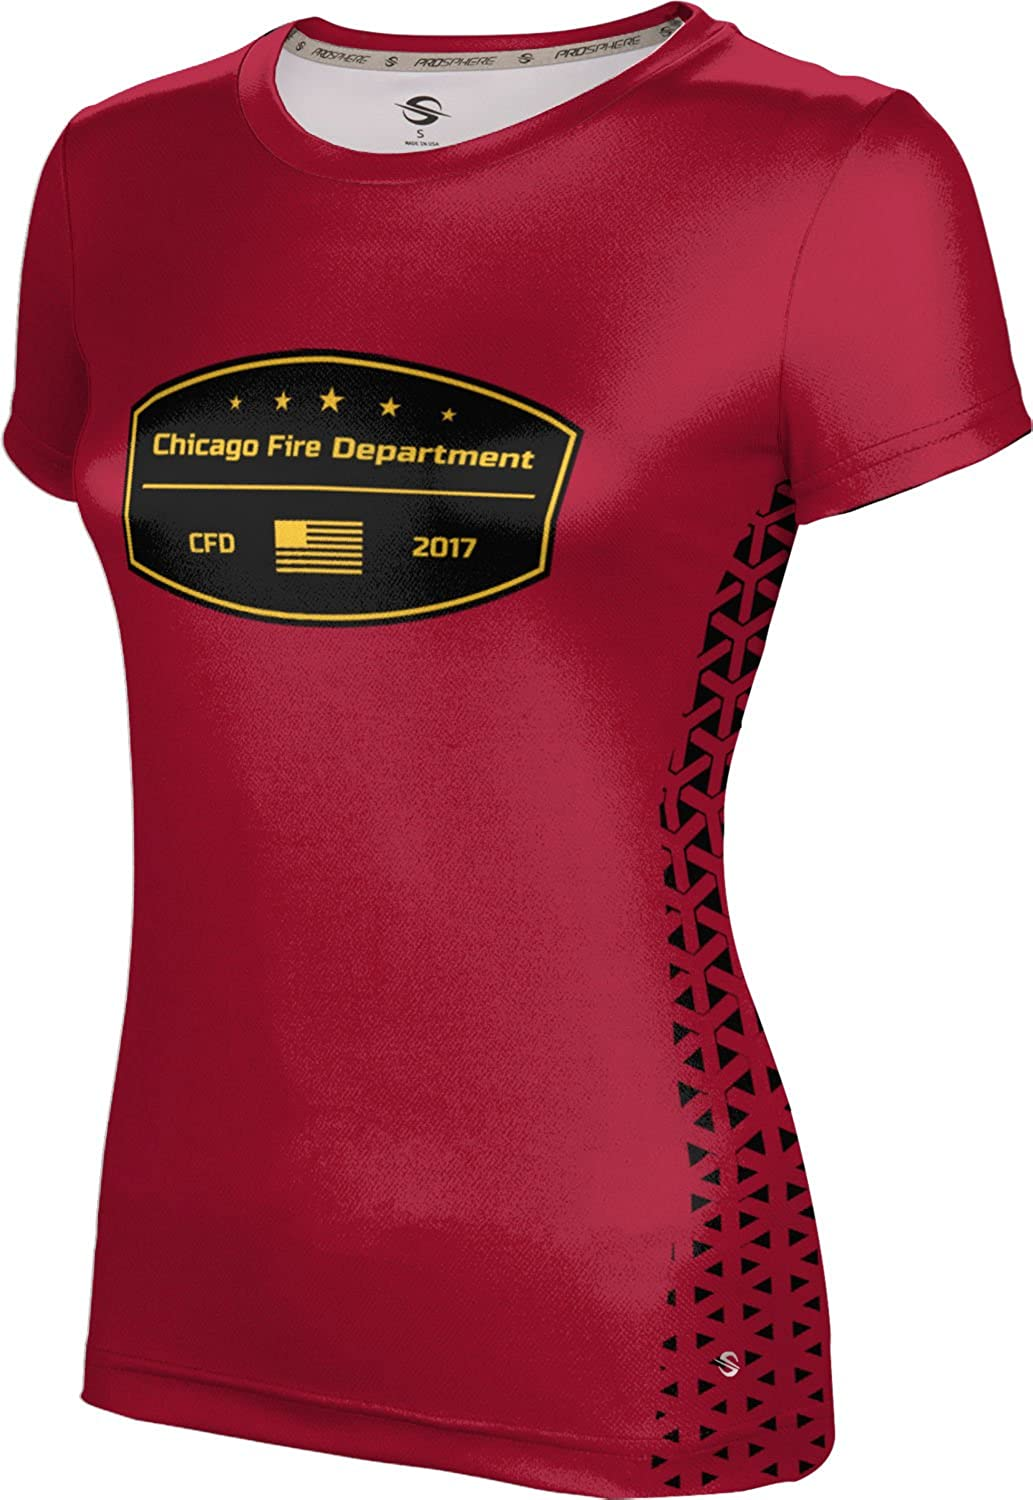 ProSphere Women's Chicago Fire Department Geometric Tech Tee